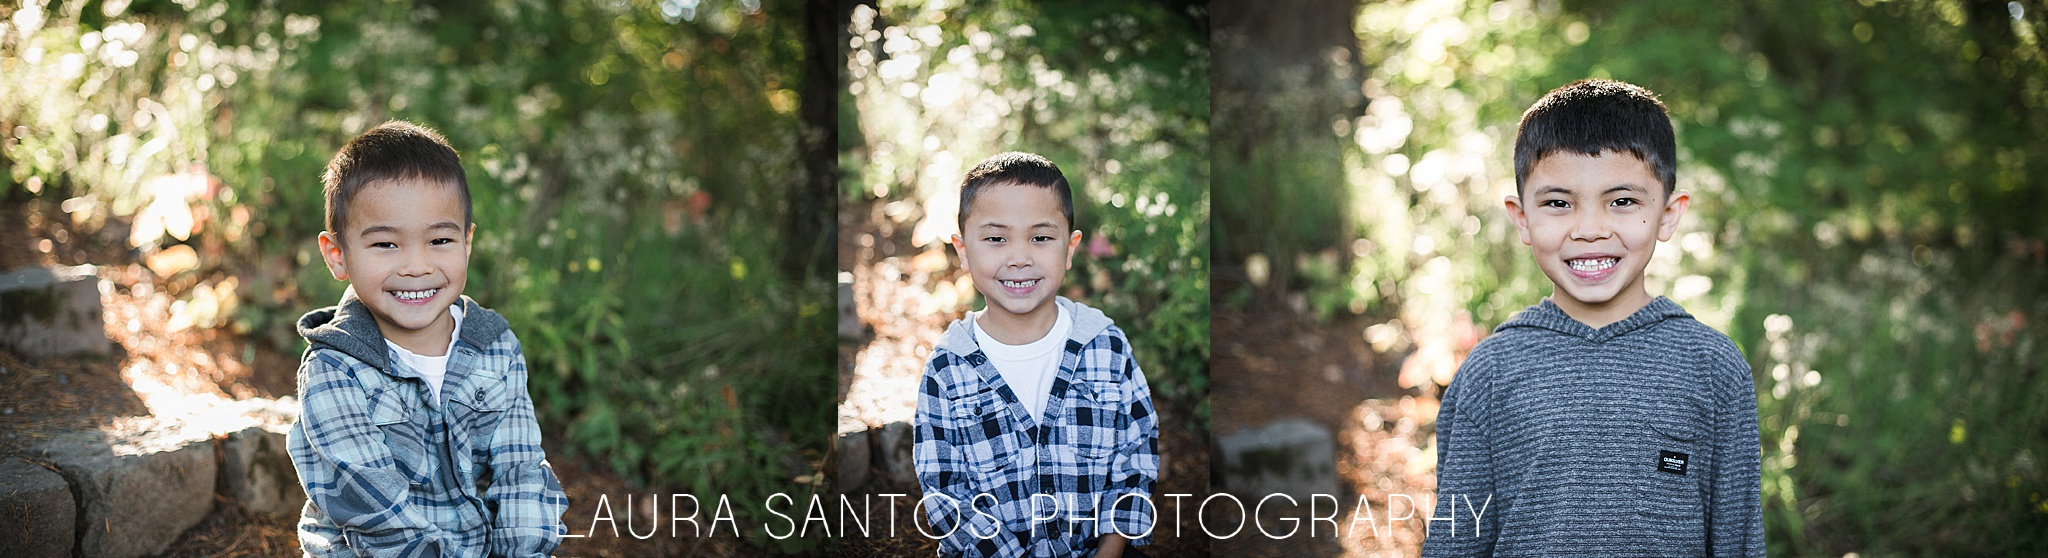 Laura Santos Photography Portland Oregon Family Photographer_0741.jpg